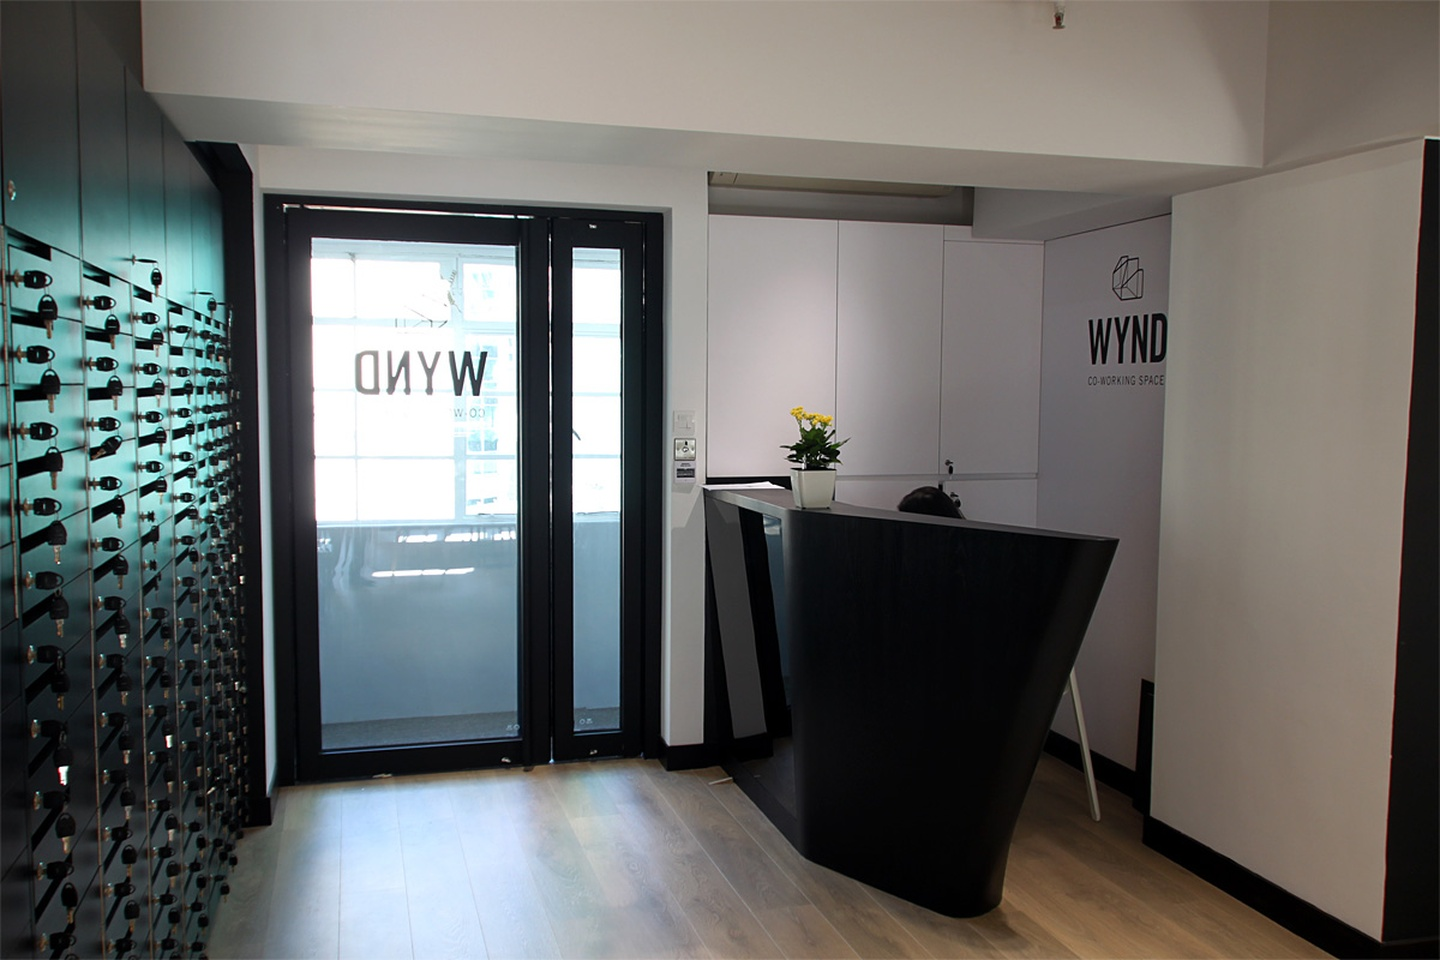 Hong Kong conference rooms Coworking space Wynd Co-Working Space - Private Office 2 image 1